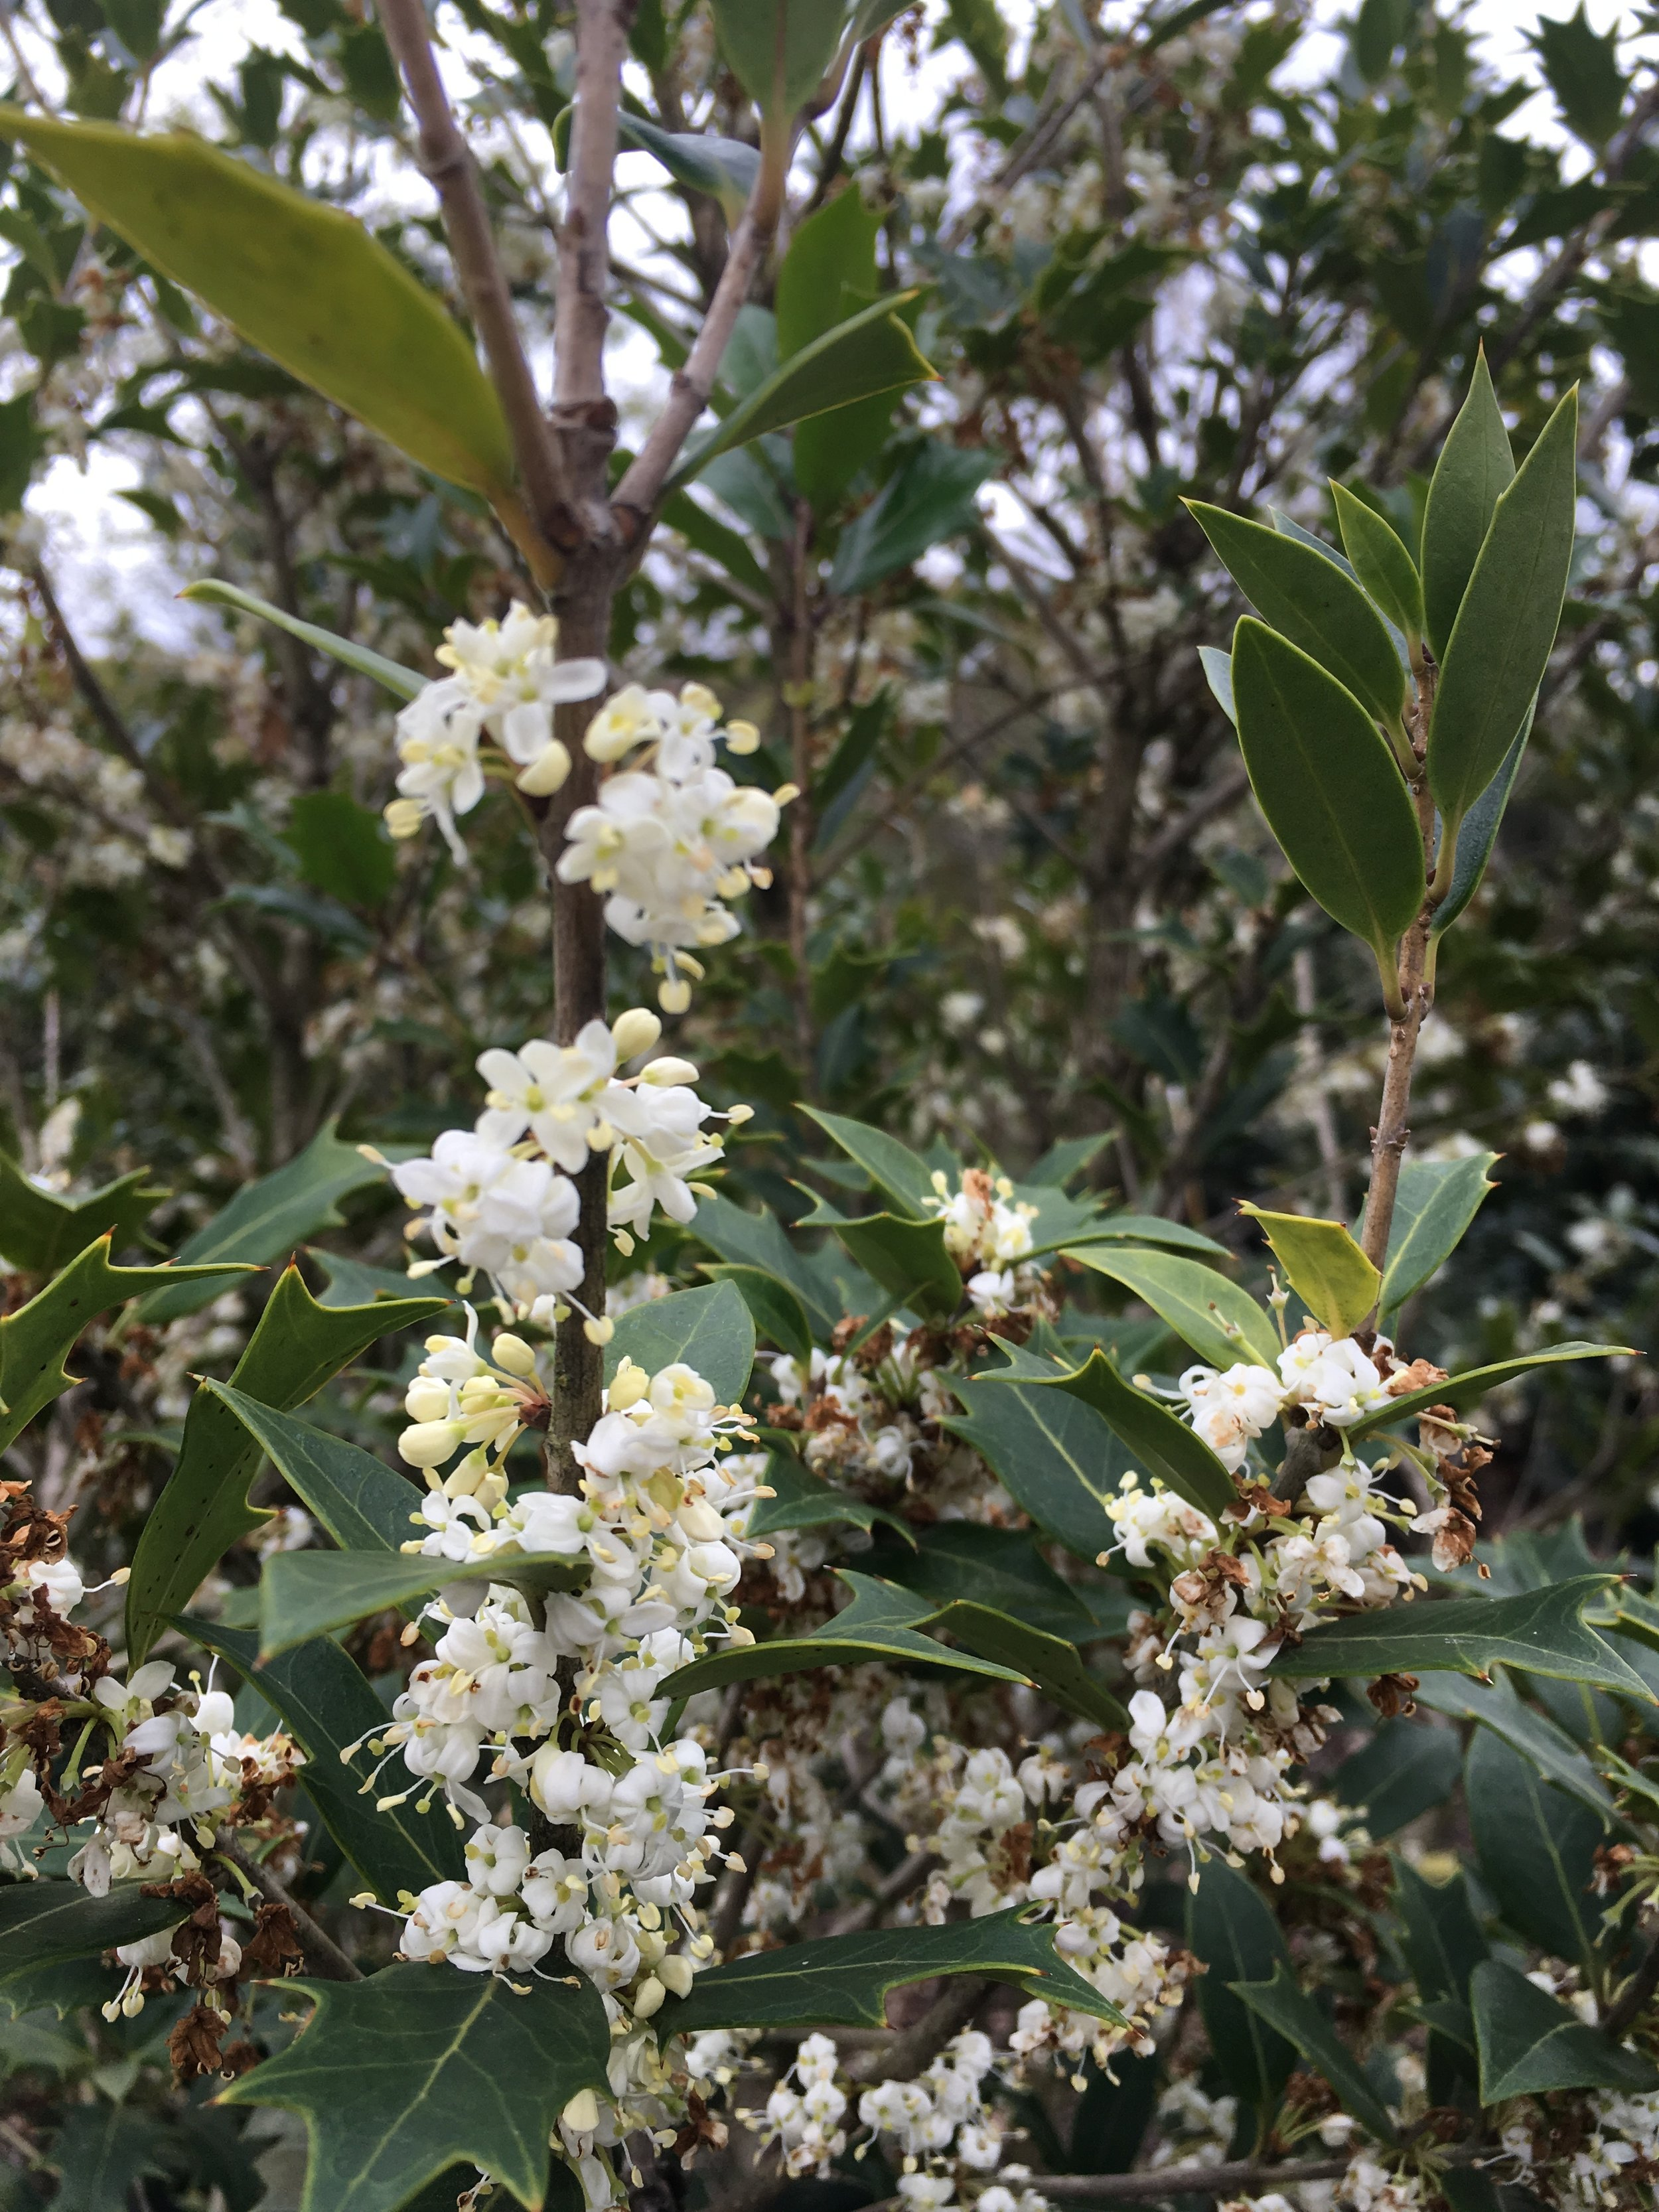 FLOWERS TO BE POLLINATED FOR BERRIES